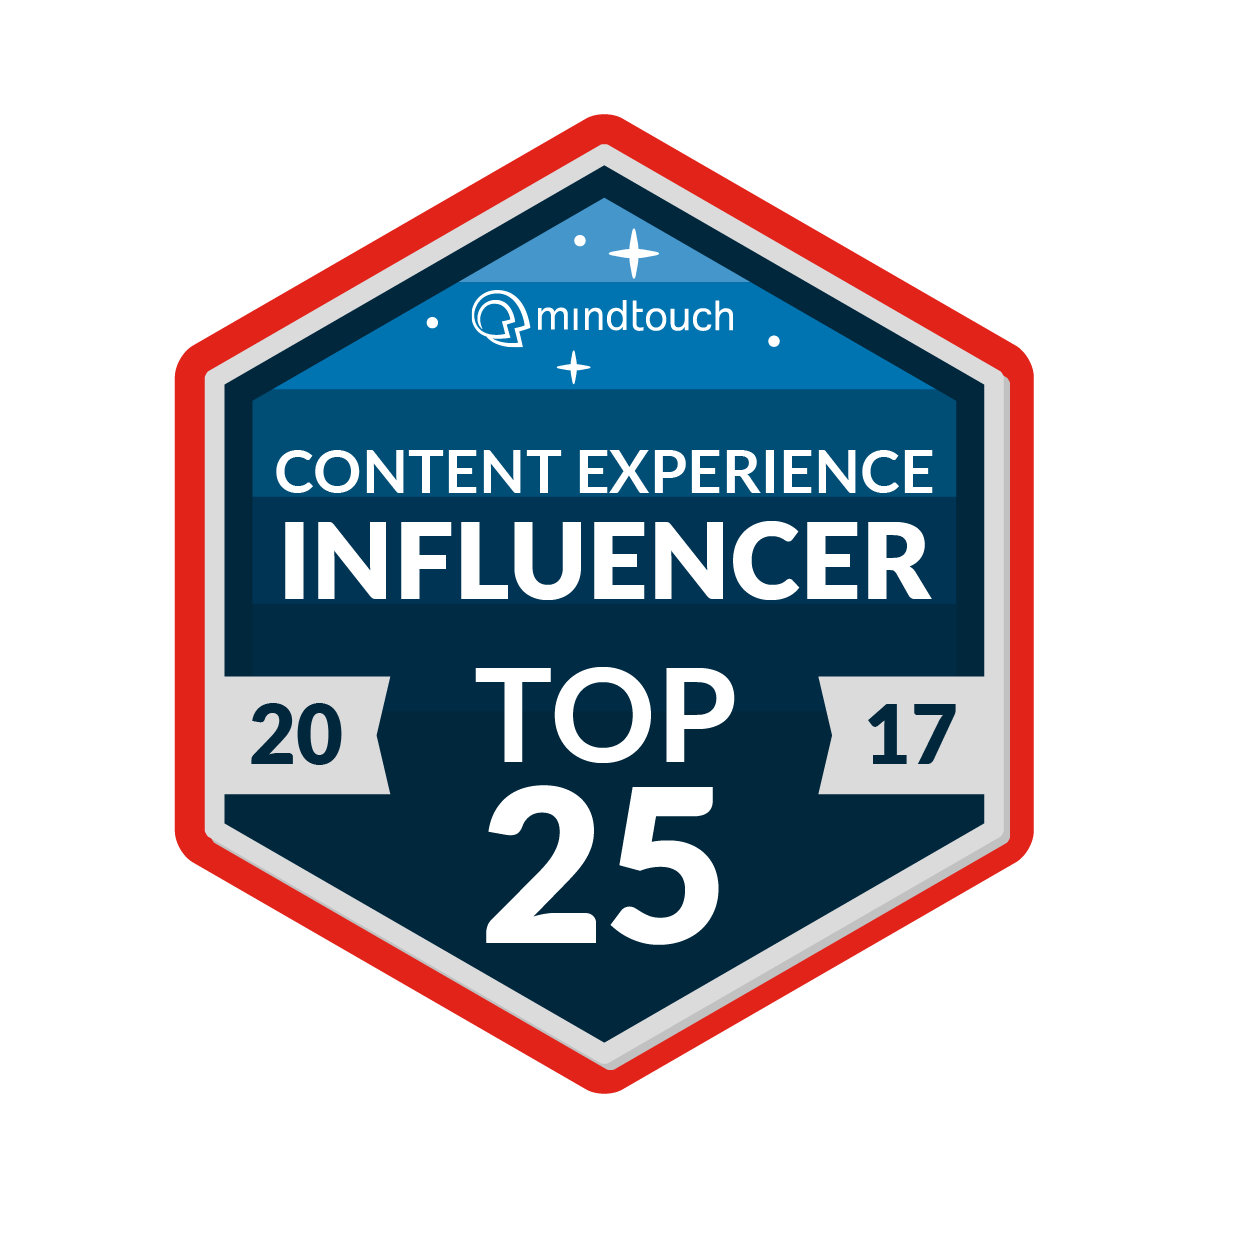 Content Experience Influencer Top 25 - I was very happy to be in this top 25 list, especially given that many of the others in the list are people I've followed and learned from since I started in structured content. The award is based on peer voting and judging. It's given to people who do innovative work in the field and who share their work with others in presentations,articles and so on.Get the whole list here.